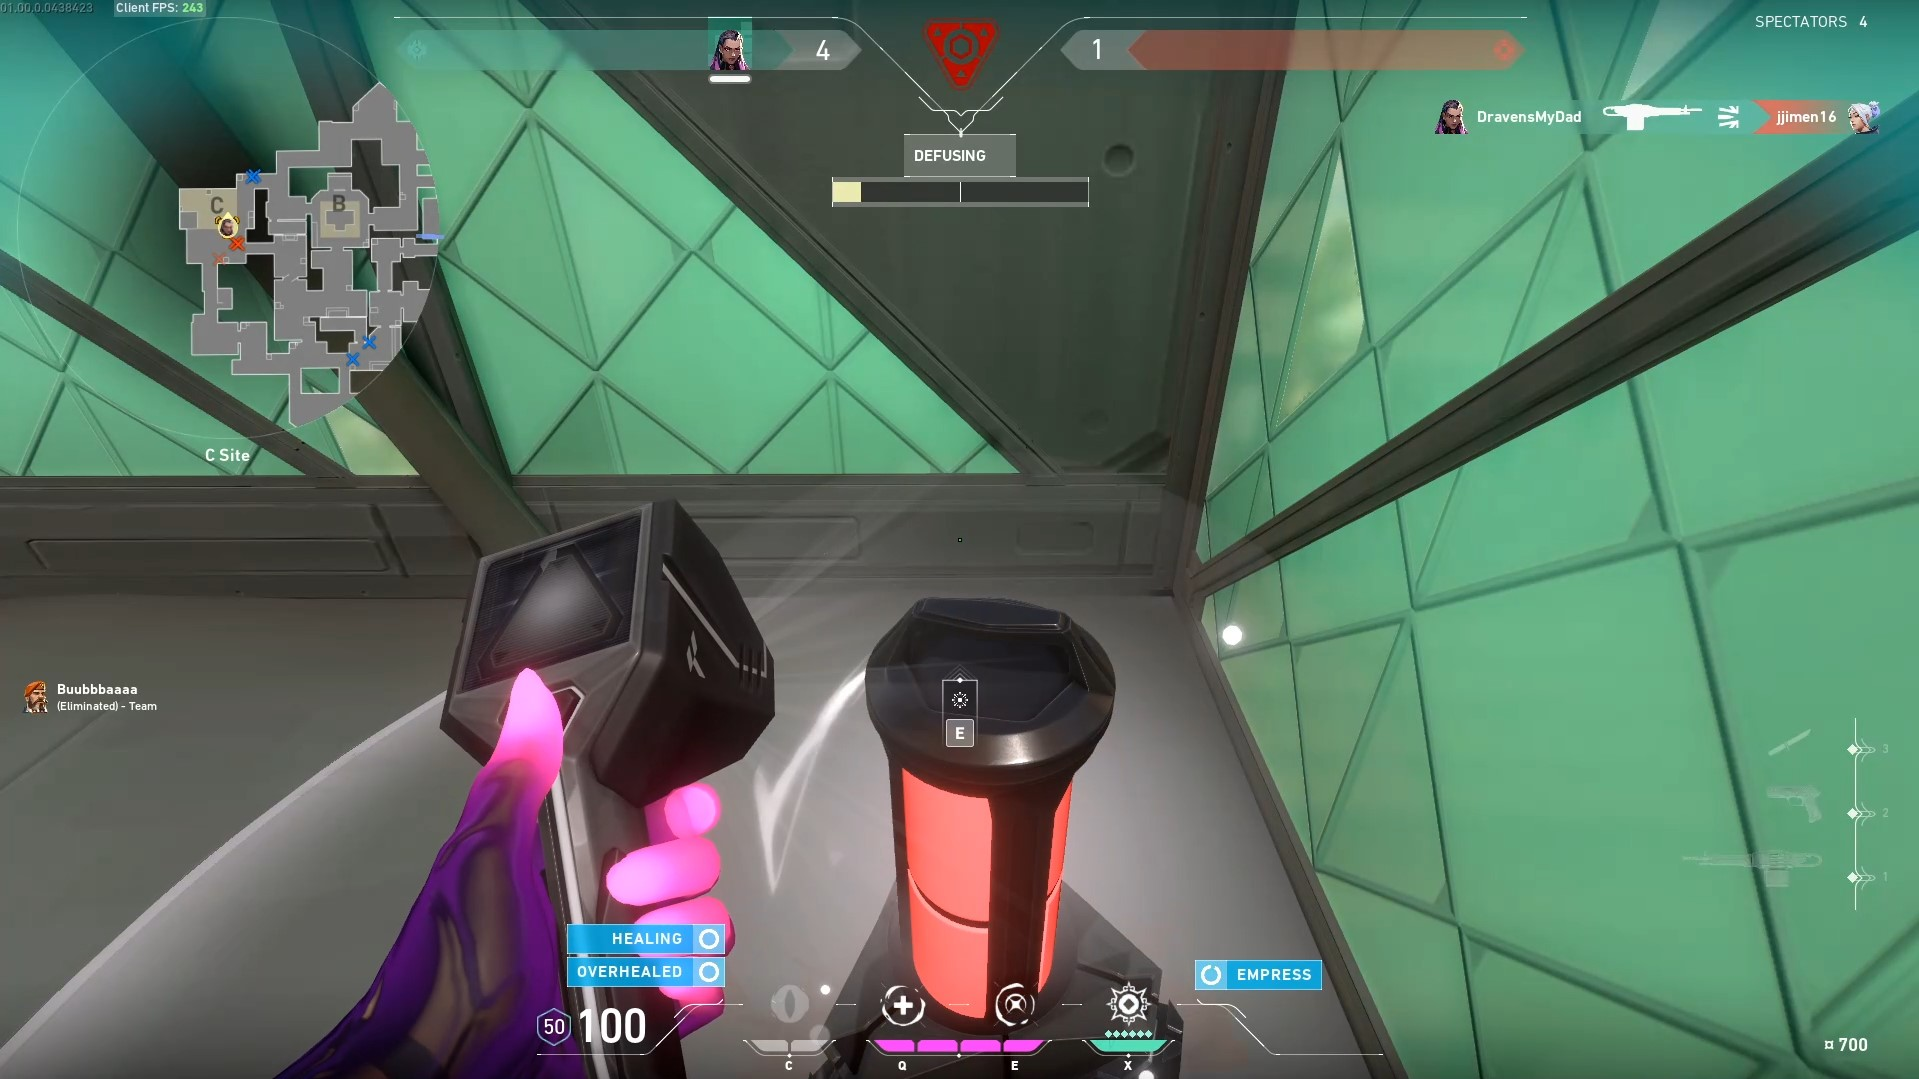 defusing the spike